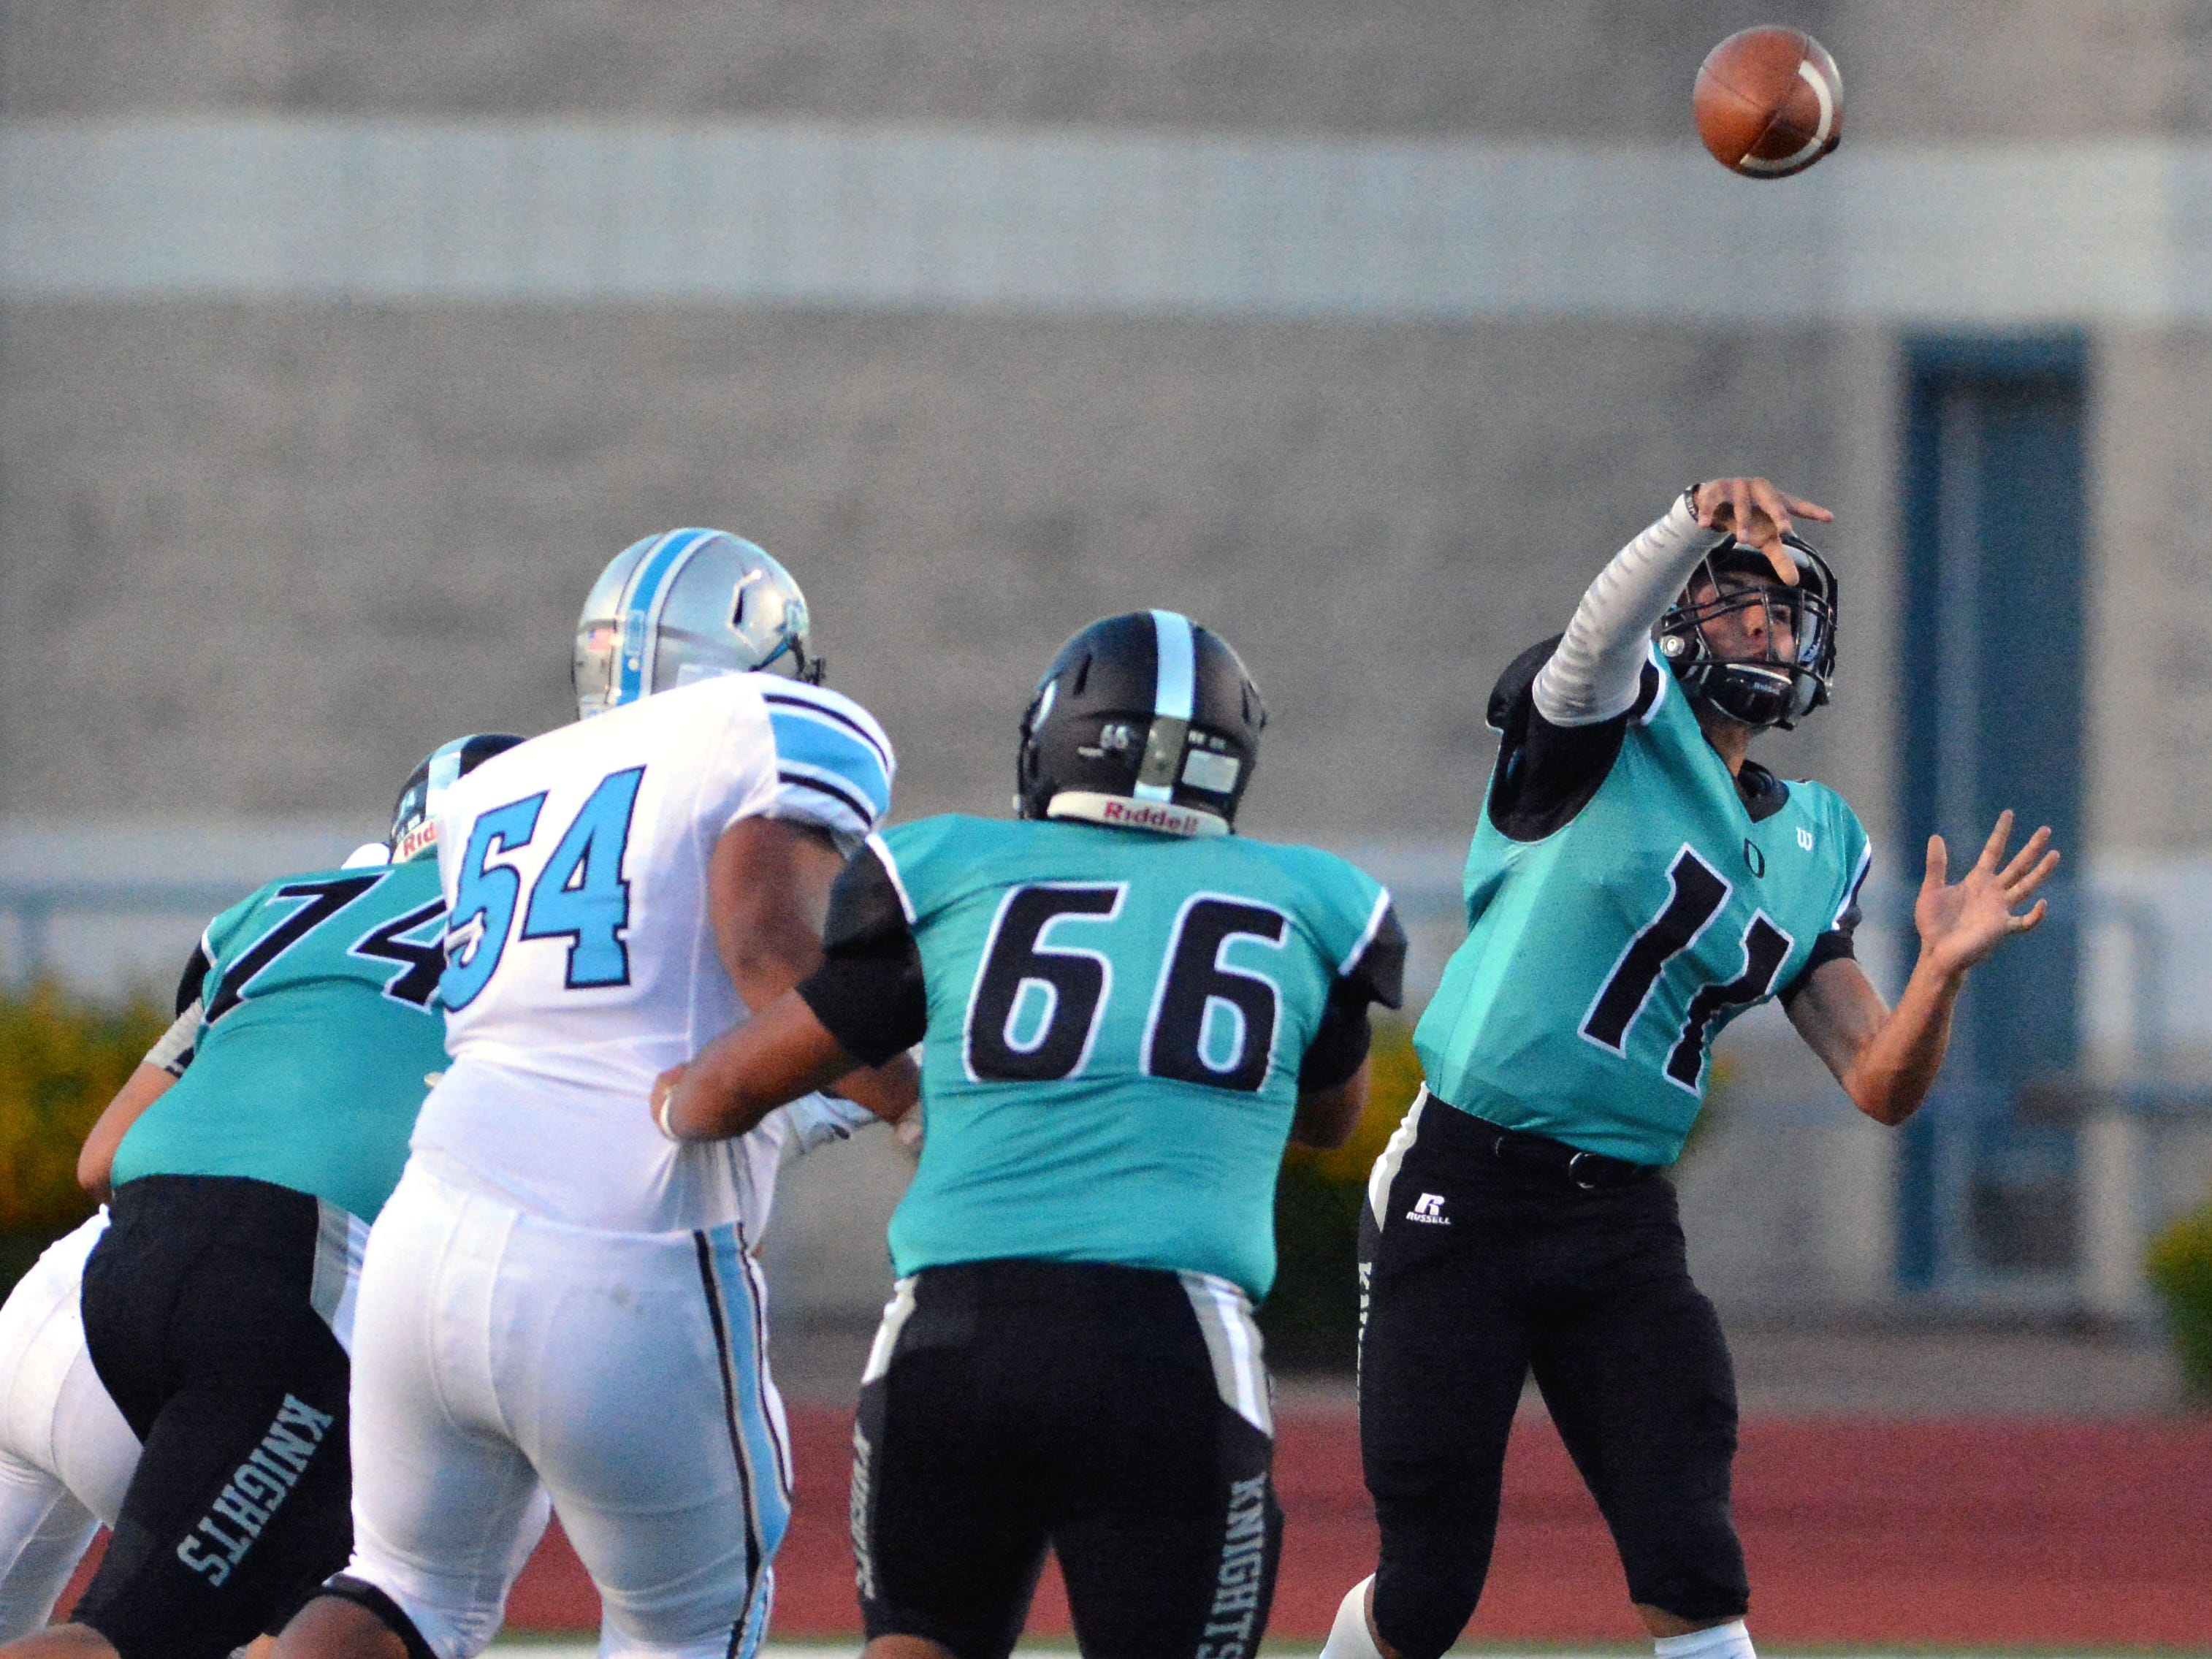 Oñate quarterback Jayden Diaz throws a pass down field on Friday night.